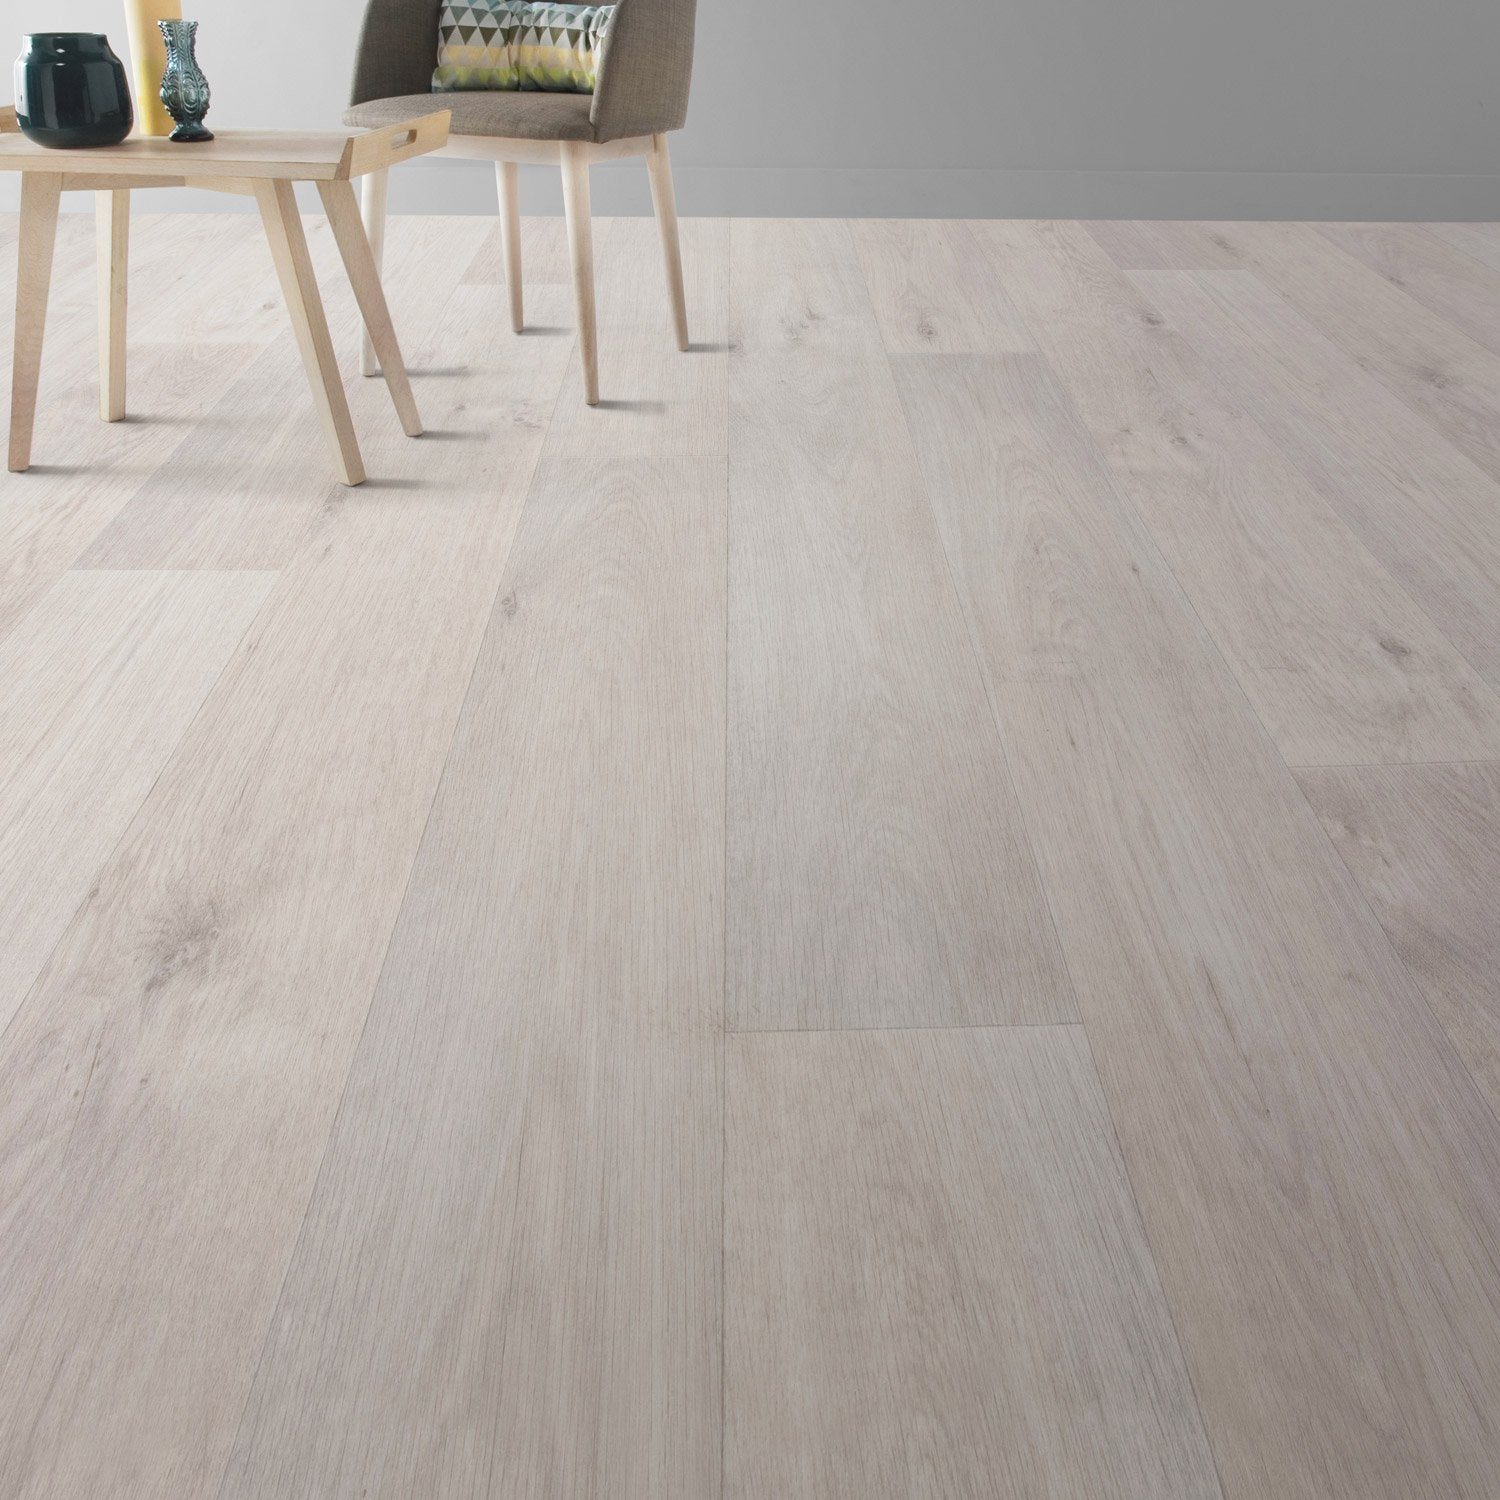 Sol pvc blanc timber gerflor texline hqr l 4 m leroy merlin - Revetement sol pvc ...